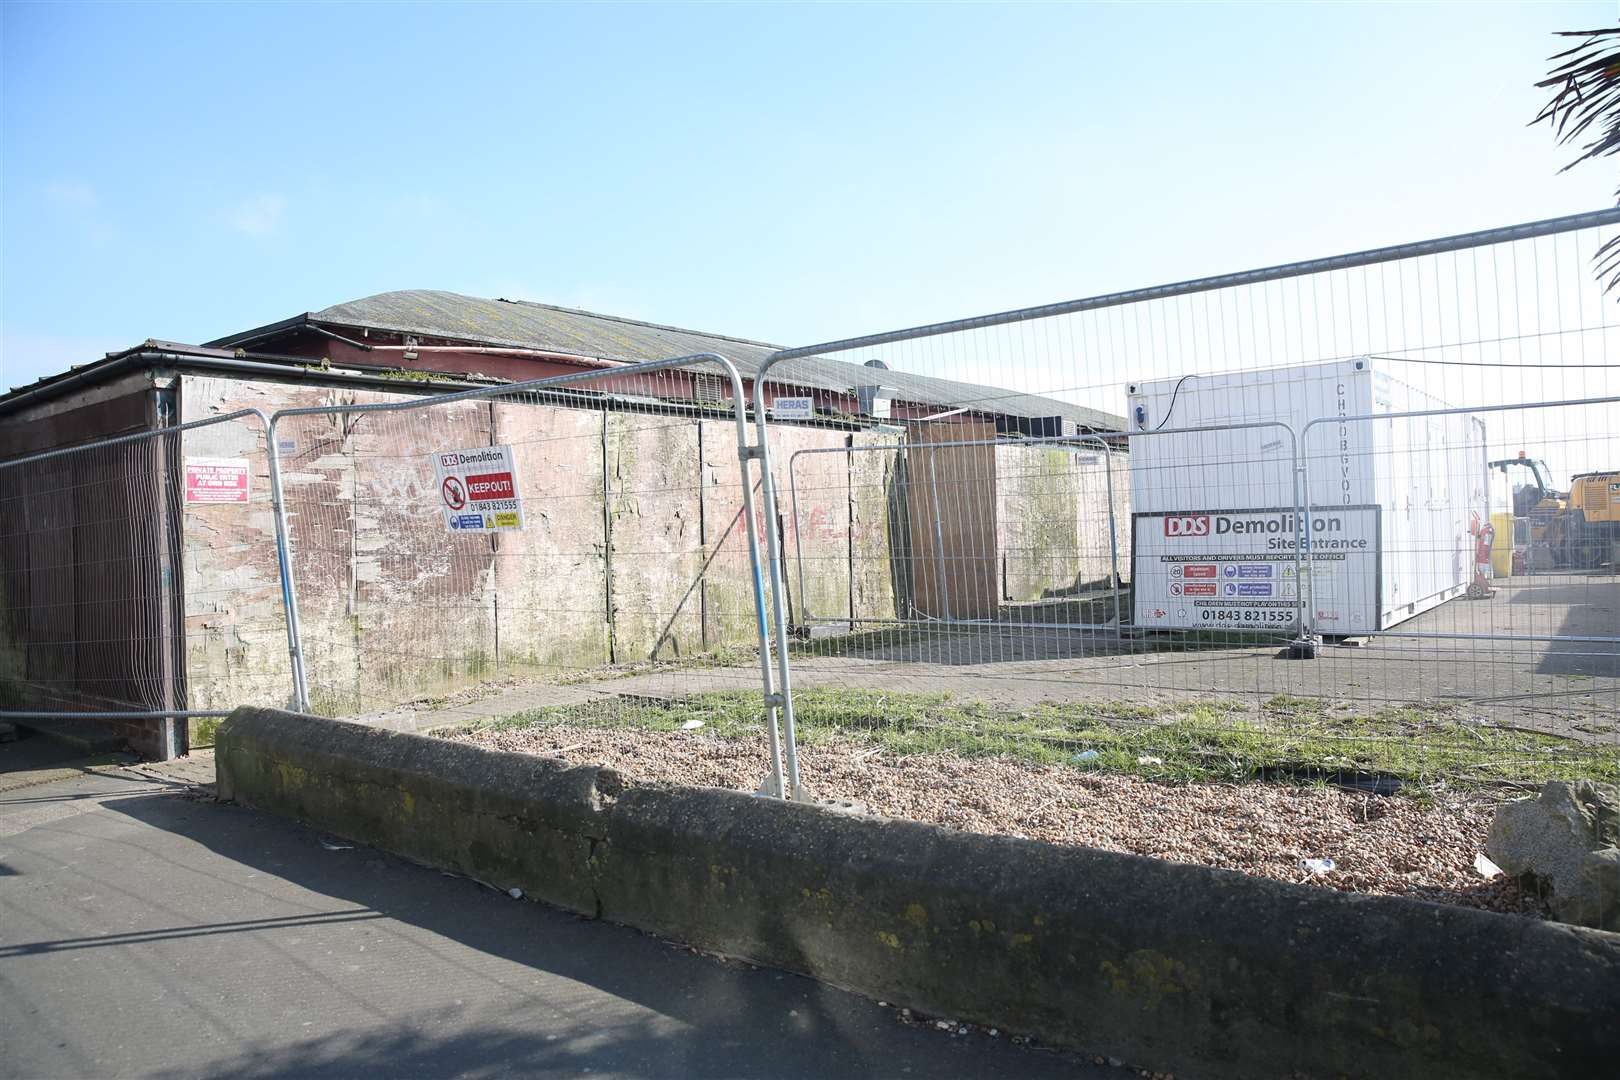 The remains of the Priz nightclub site that was badly damaged in a fire. Picture: Rebecca Holliday